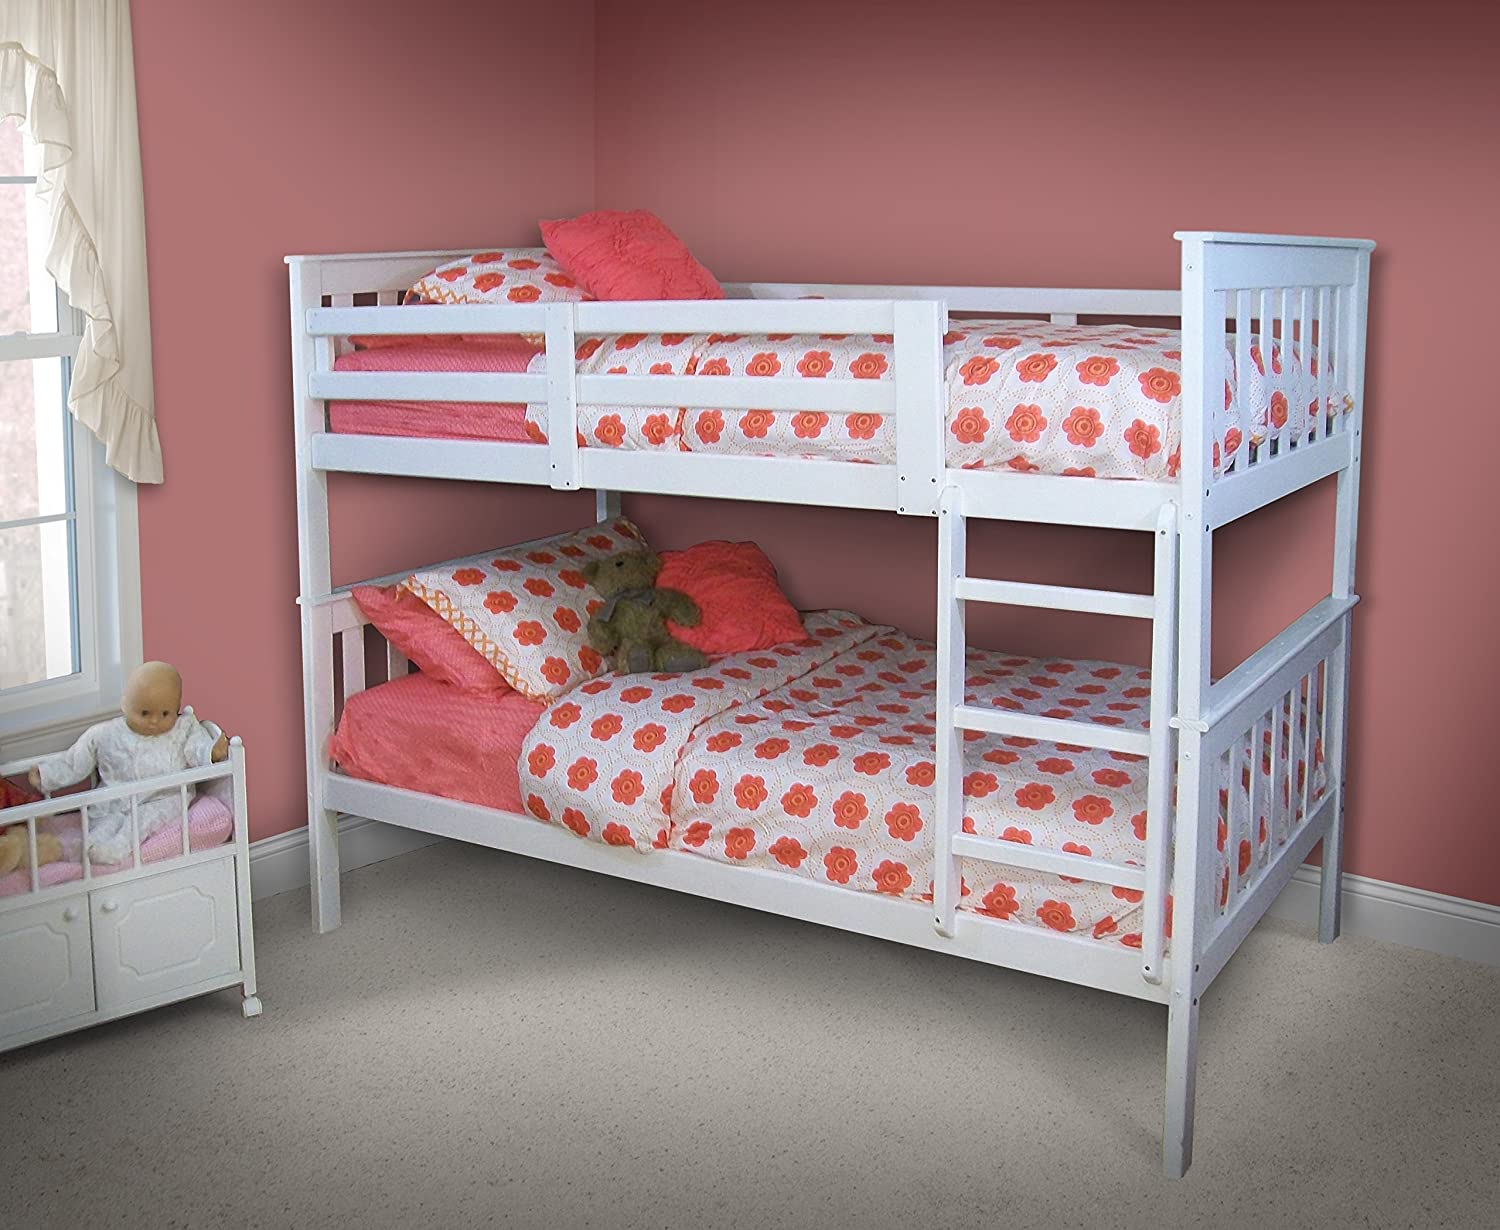 White bunk beds for girls and boys kids twin over twin bed bunkbeds solid wood bedroom furniture for children mission style childrens furnishings